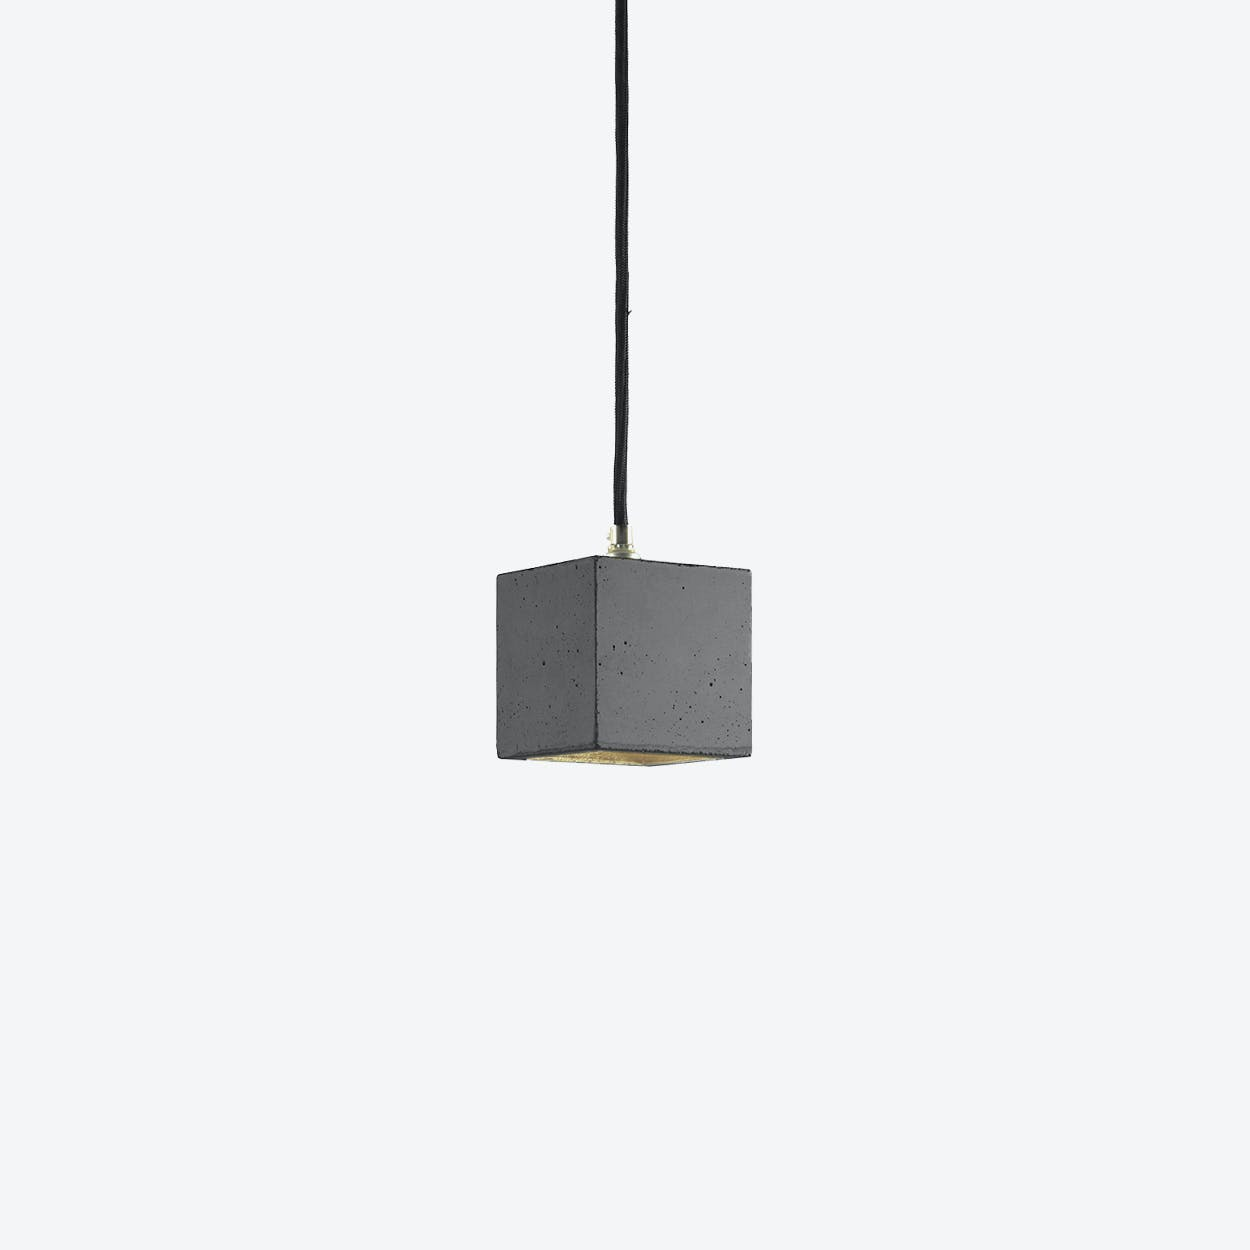 Concrete Pendant Light Cubic Small B6 in Dark Grey and Gold